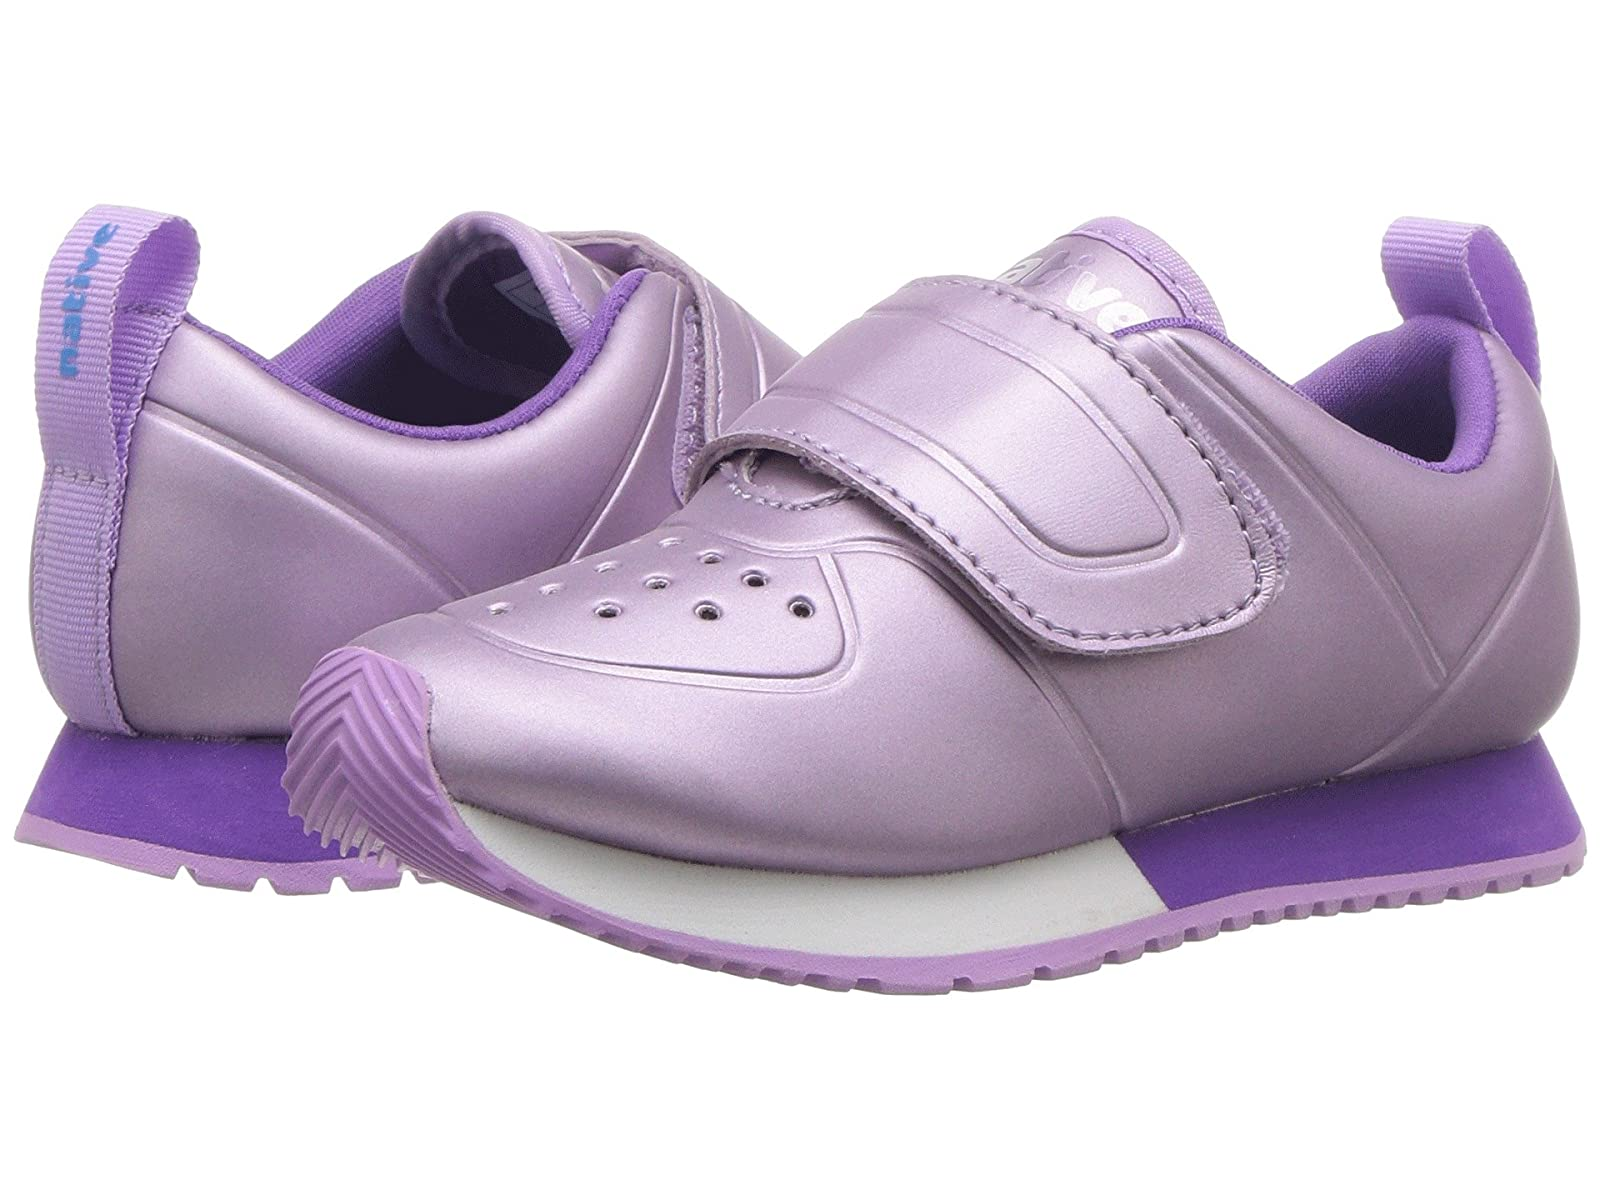 Native Kids Shoes Cornell H&L Metallic (Toddler/Little Kid)Atmospheric grades have affordable shoes